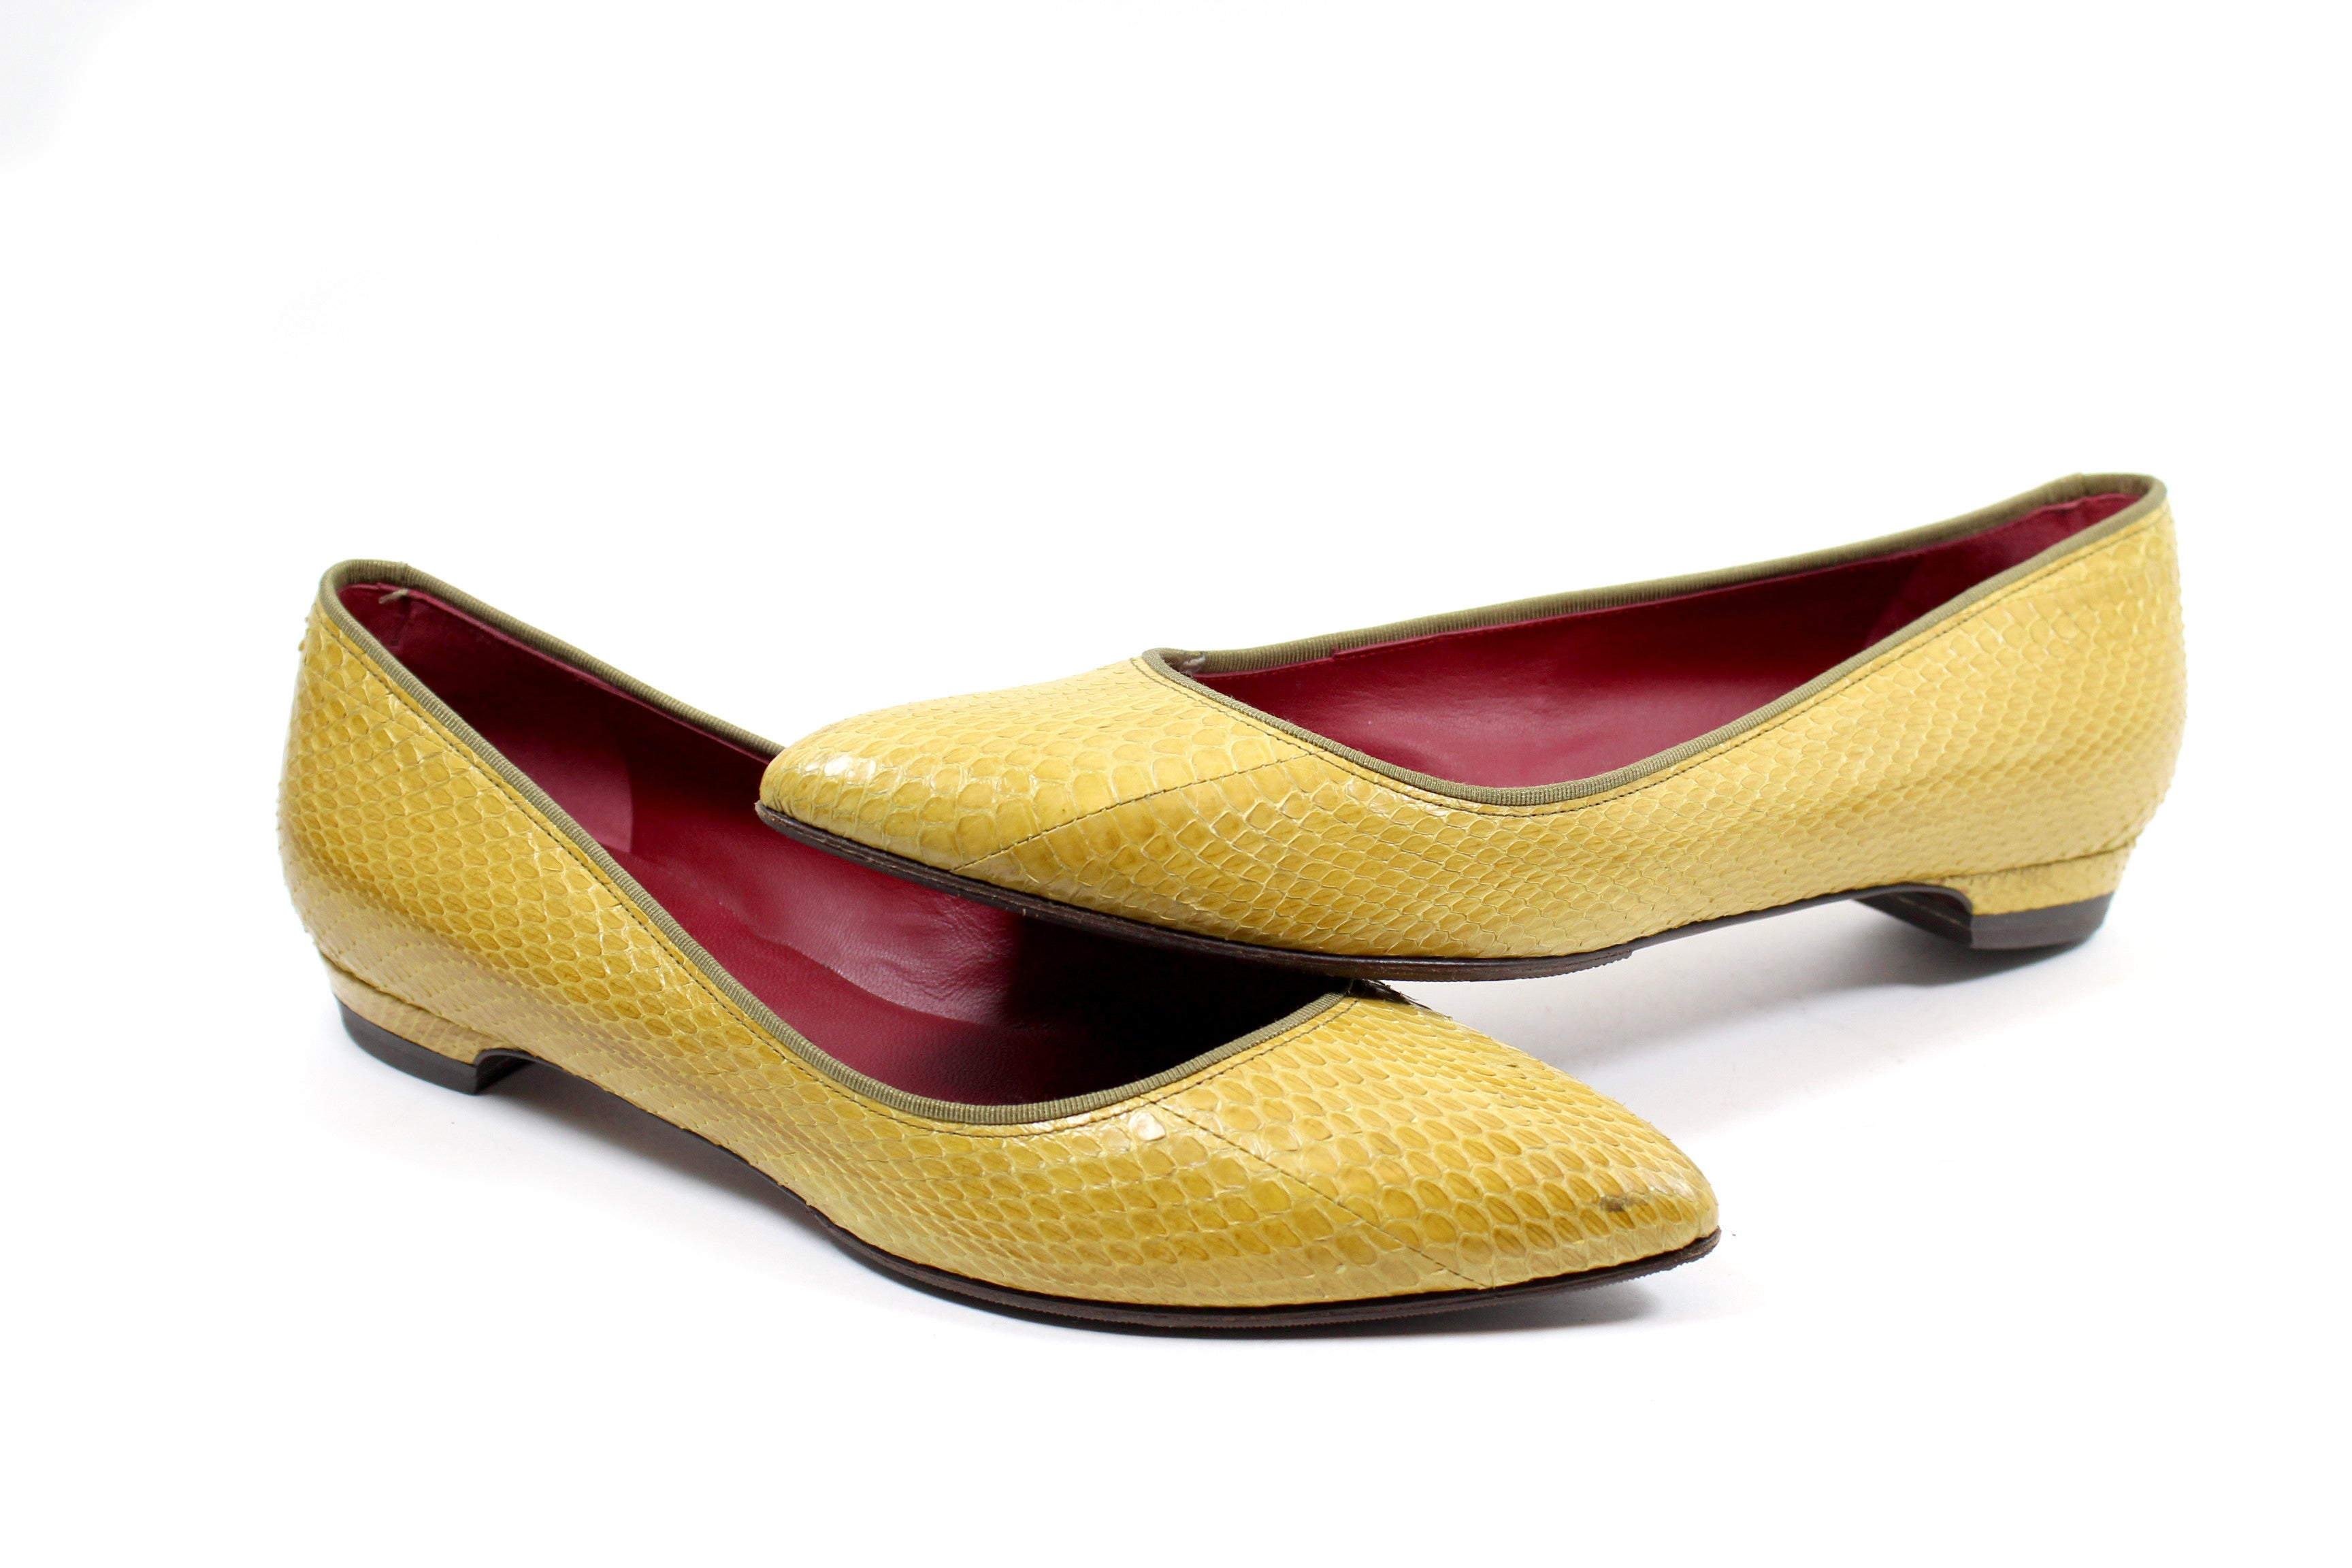 Lanvin Pointed-Toe Yellow Snakeskin Flats (Size 39.5)